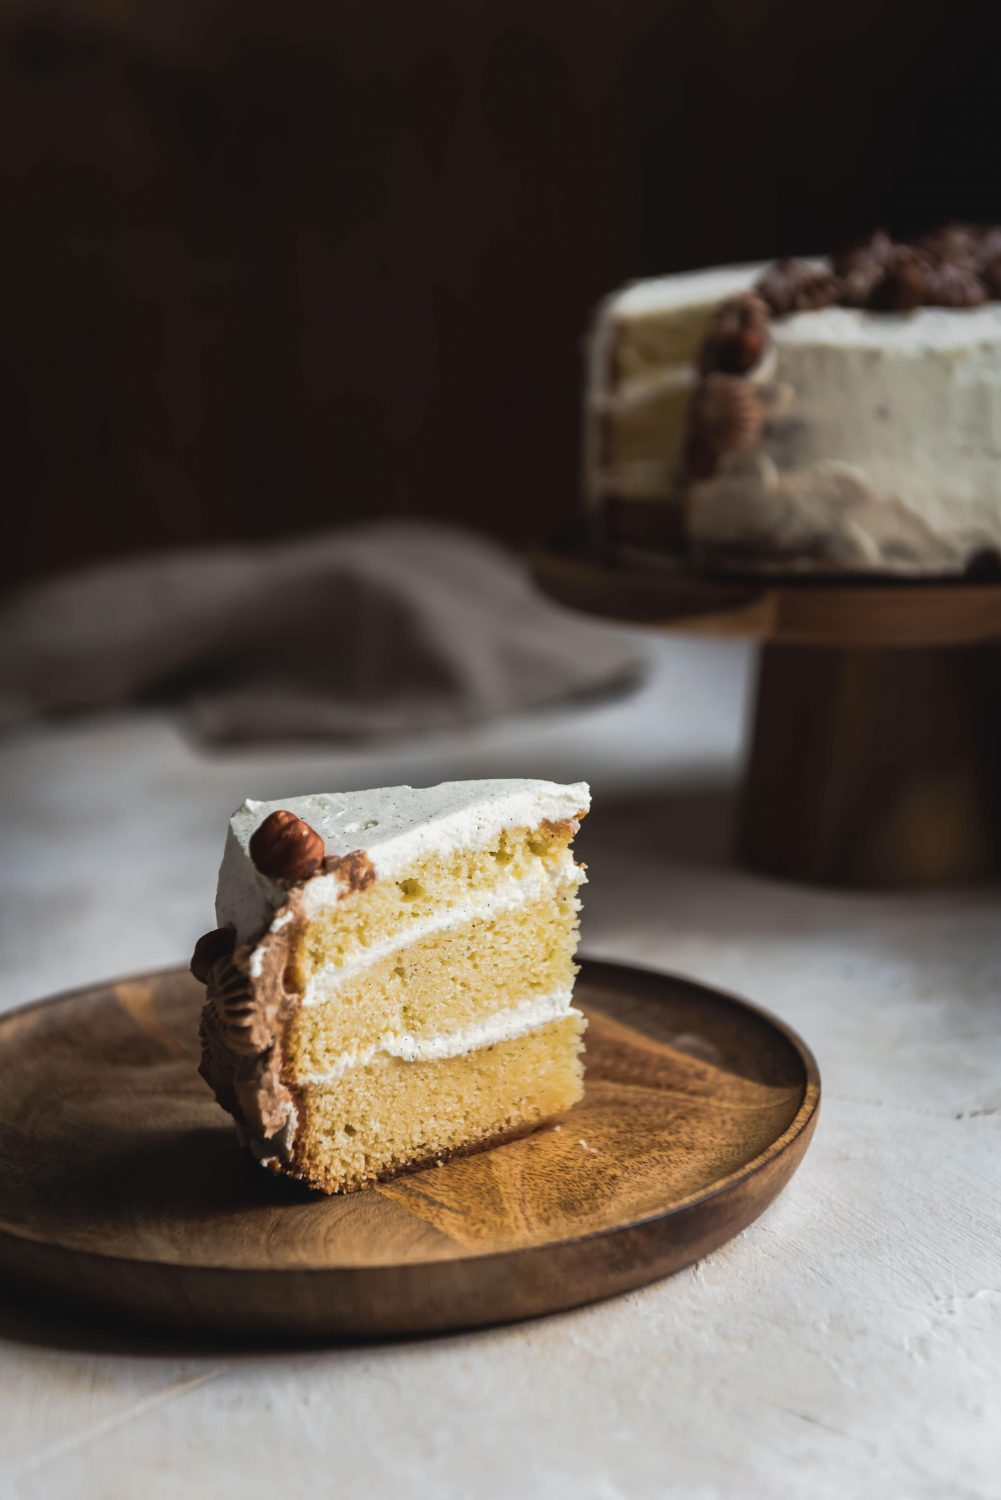 Layer cake vanille et gianduja